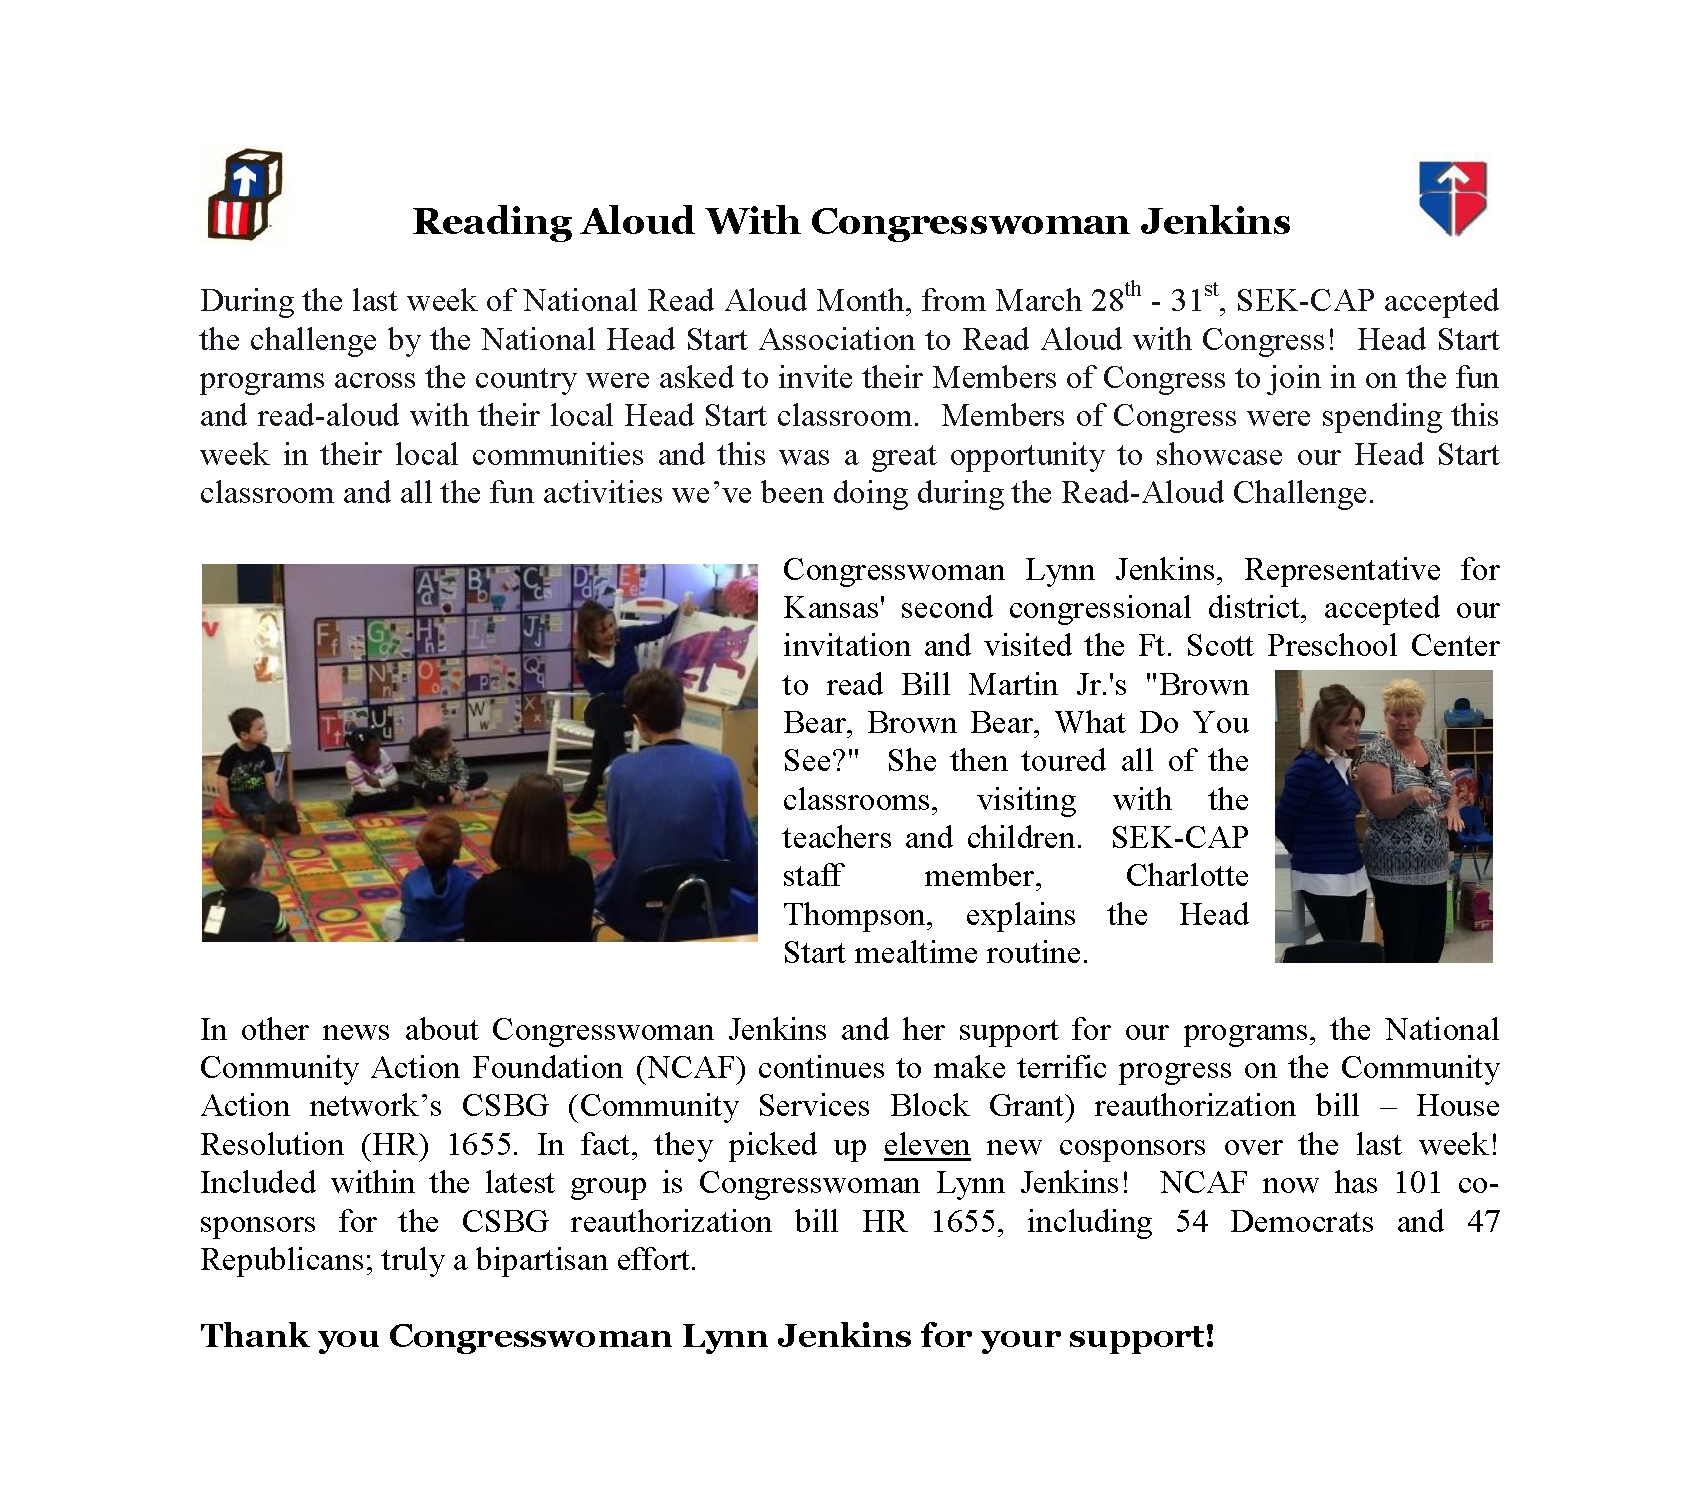 Reading Aloud With Congresswoman Jenkins